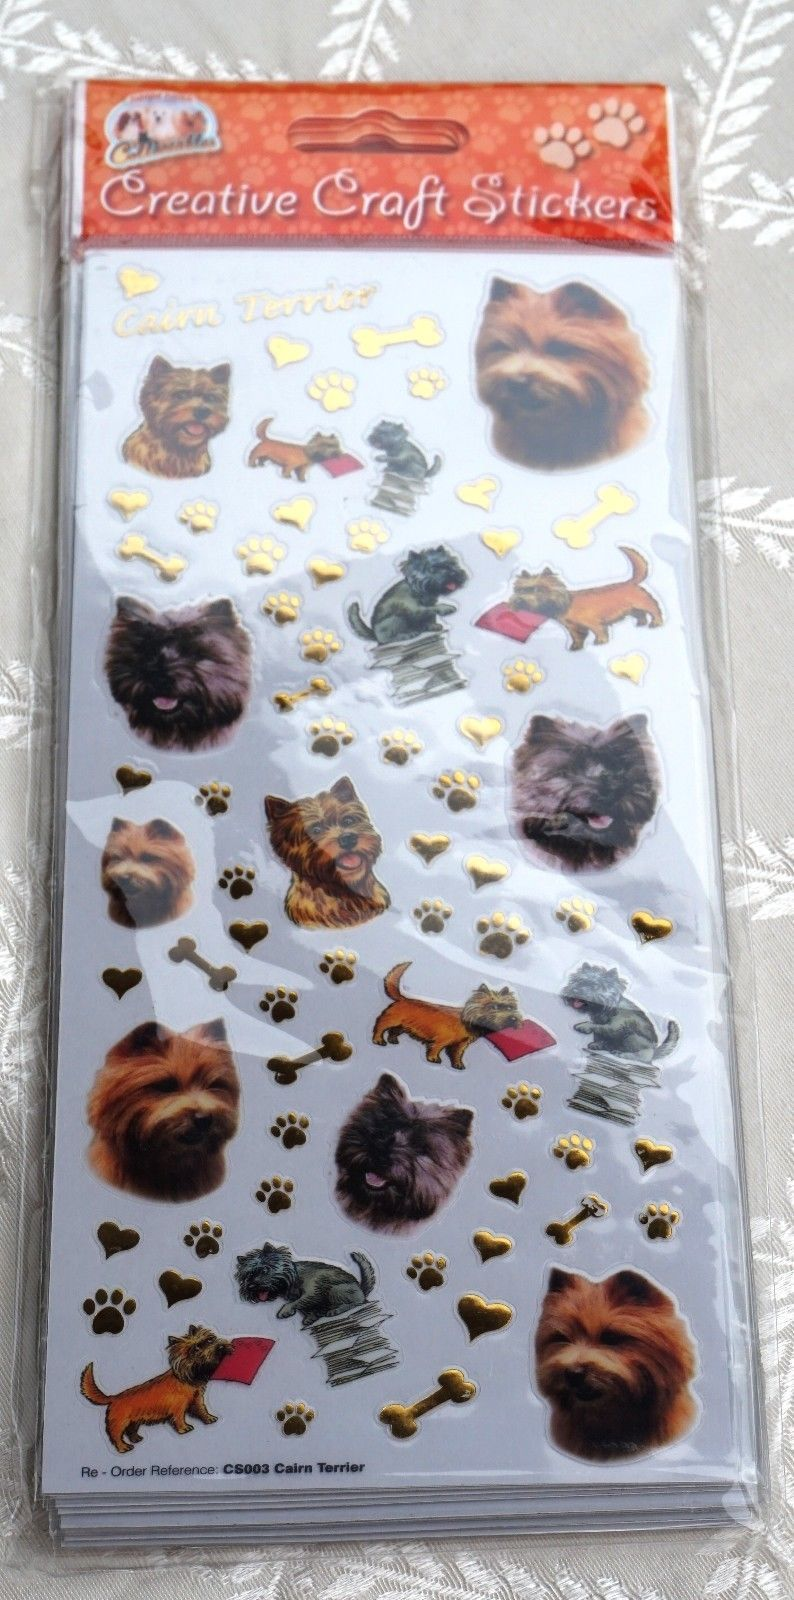 CAIRN TERRIER - CRAFT STICKERS FOR SCRAPBOOKING, CARD CRAFT ETC